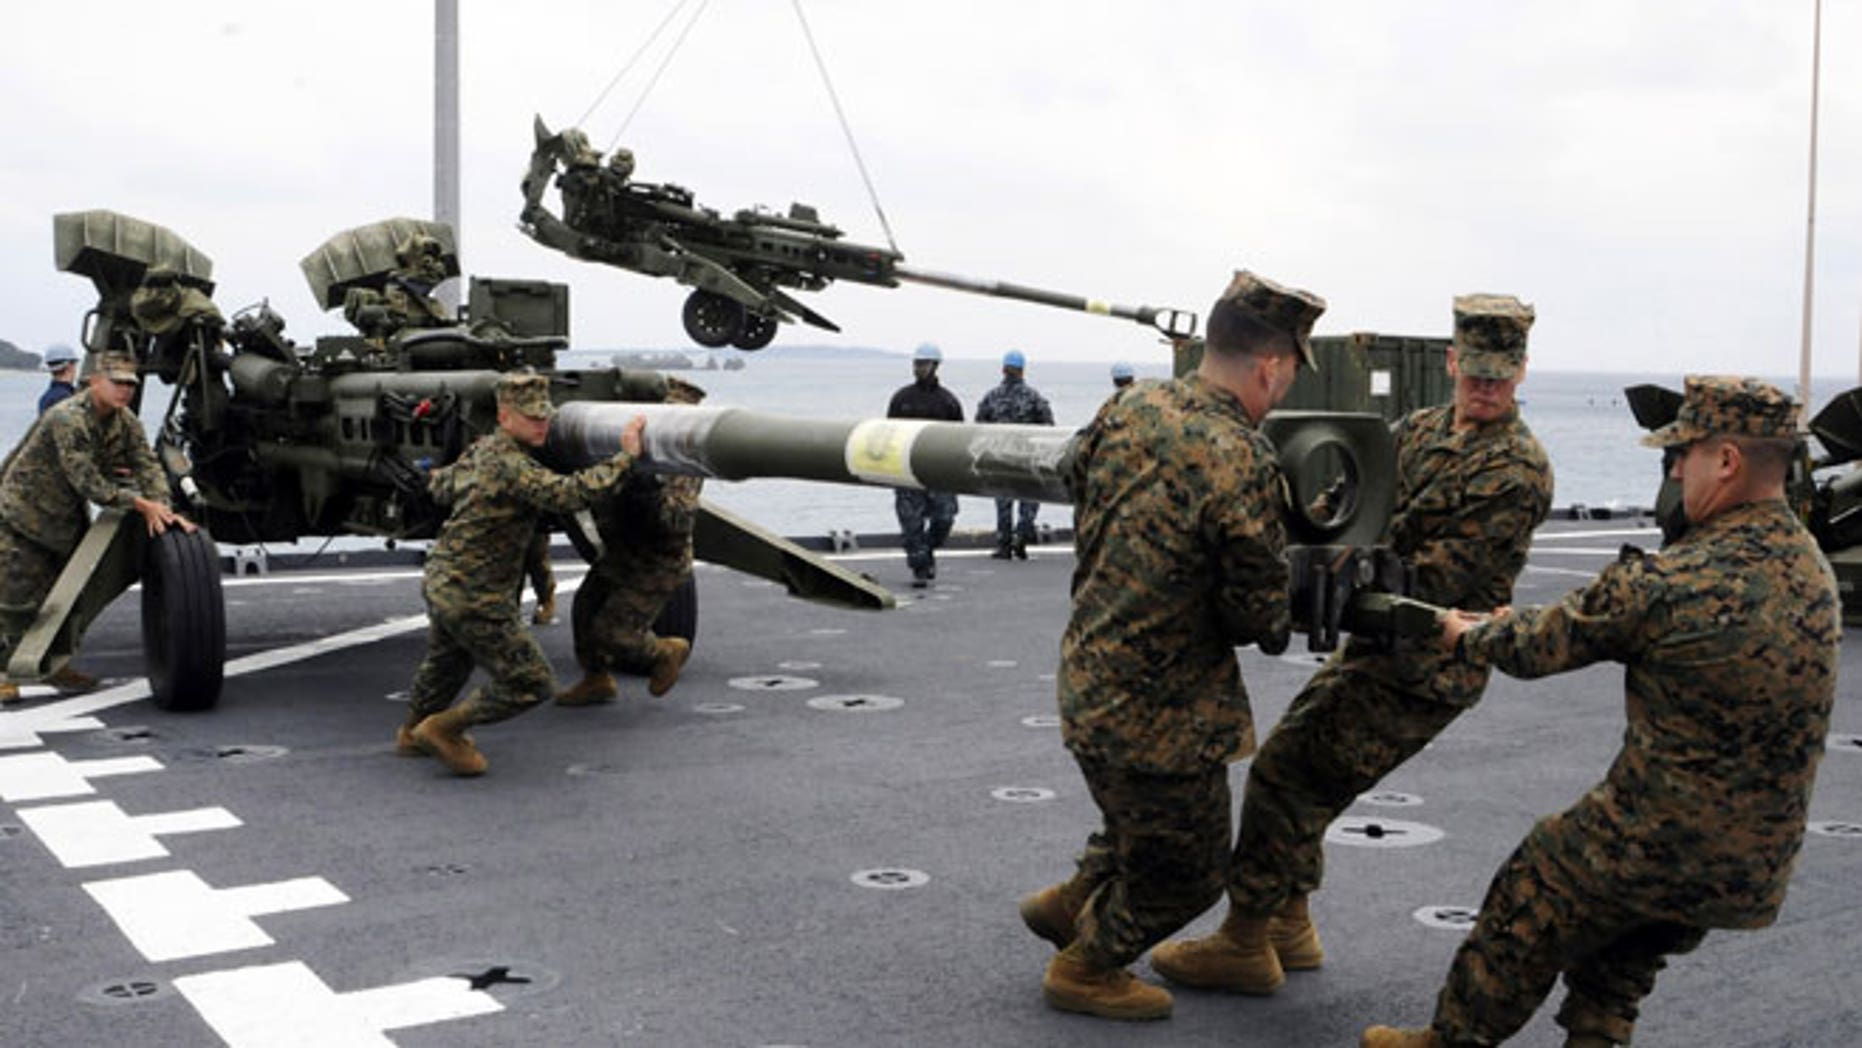 In this Feb. 2, 2012 file photo released by U.S. Navy, U.S. Marines assigned to the 31st Marine Expeditionary Unit haul a 155 mm Howitzer onto the flight deck of the forward-deployed amphibious dock landing ship USS Germantown in Okinawa, Japan, when the ship pulled into Okinawa to embark the Marines in preparation of exercise Cobra Gold 2012.